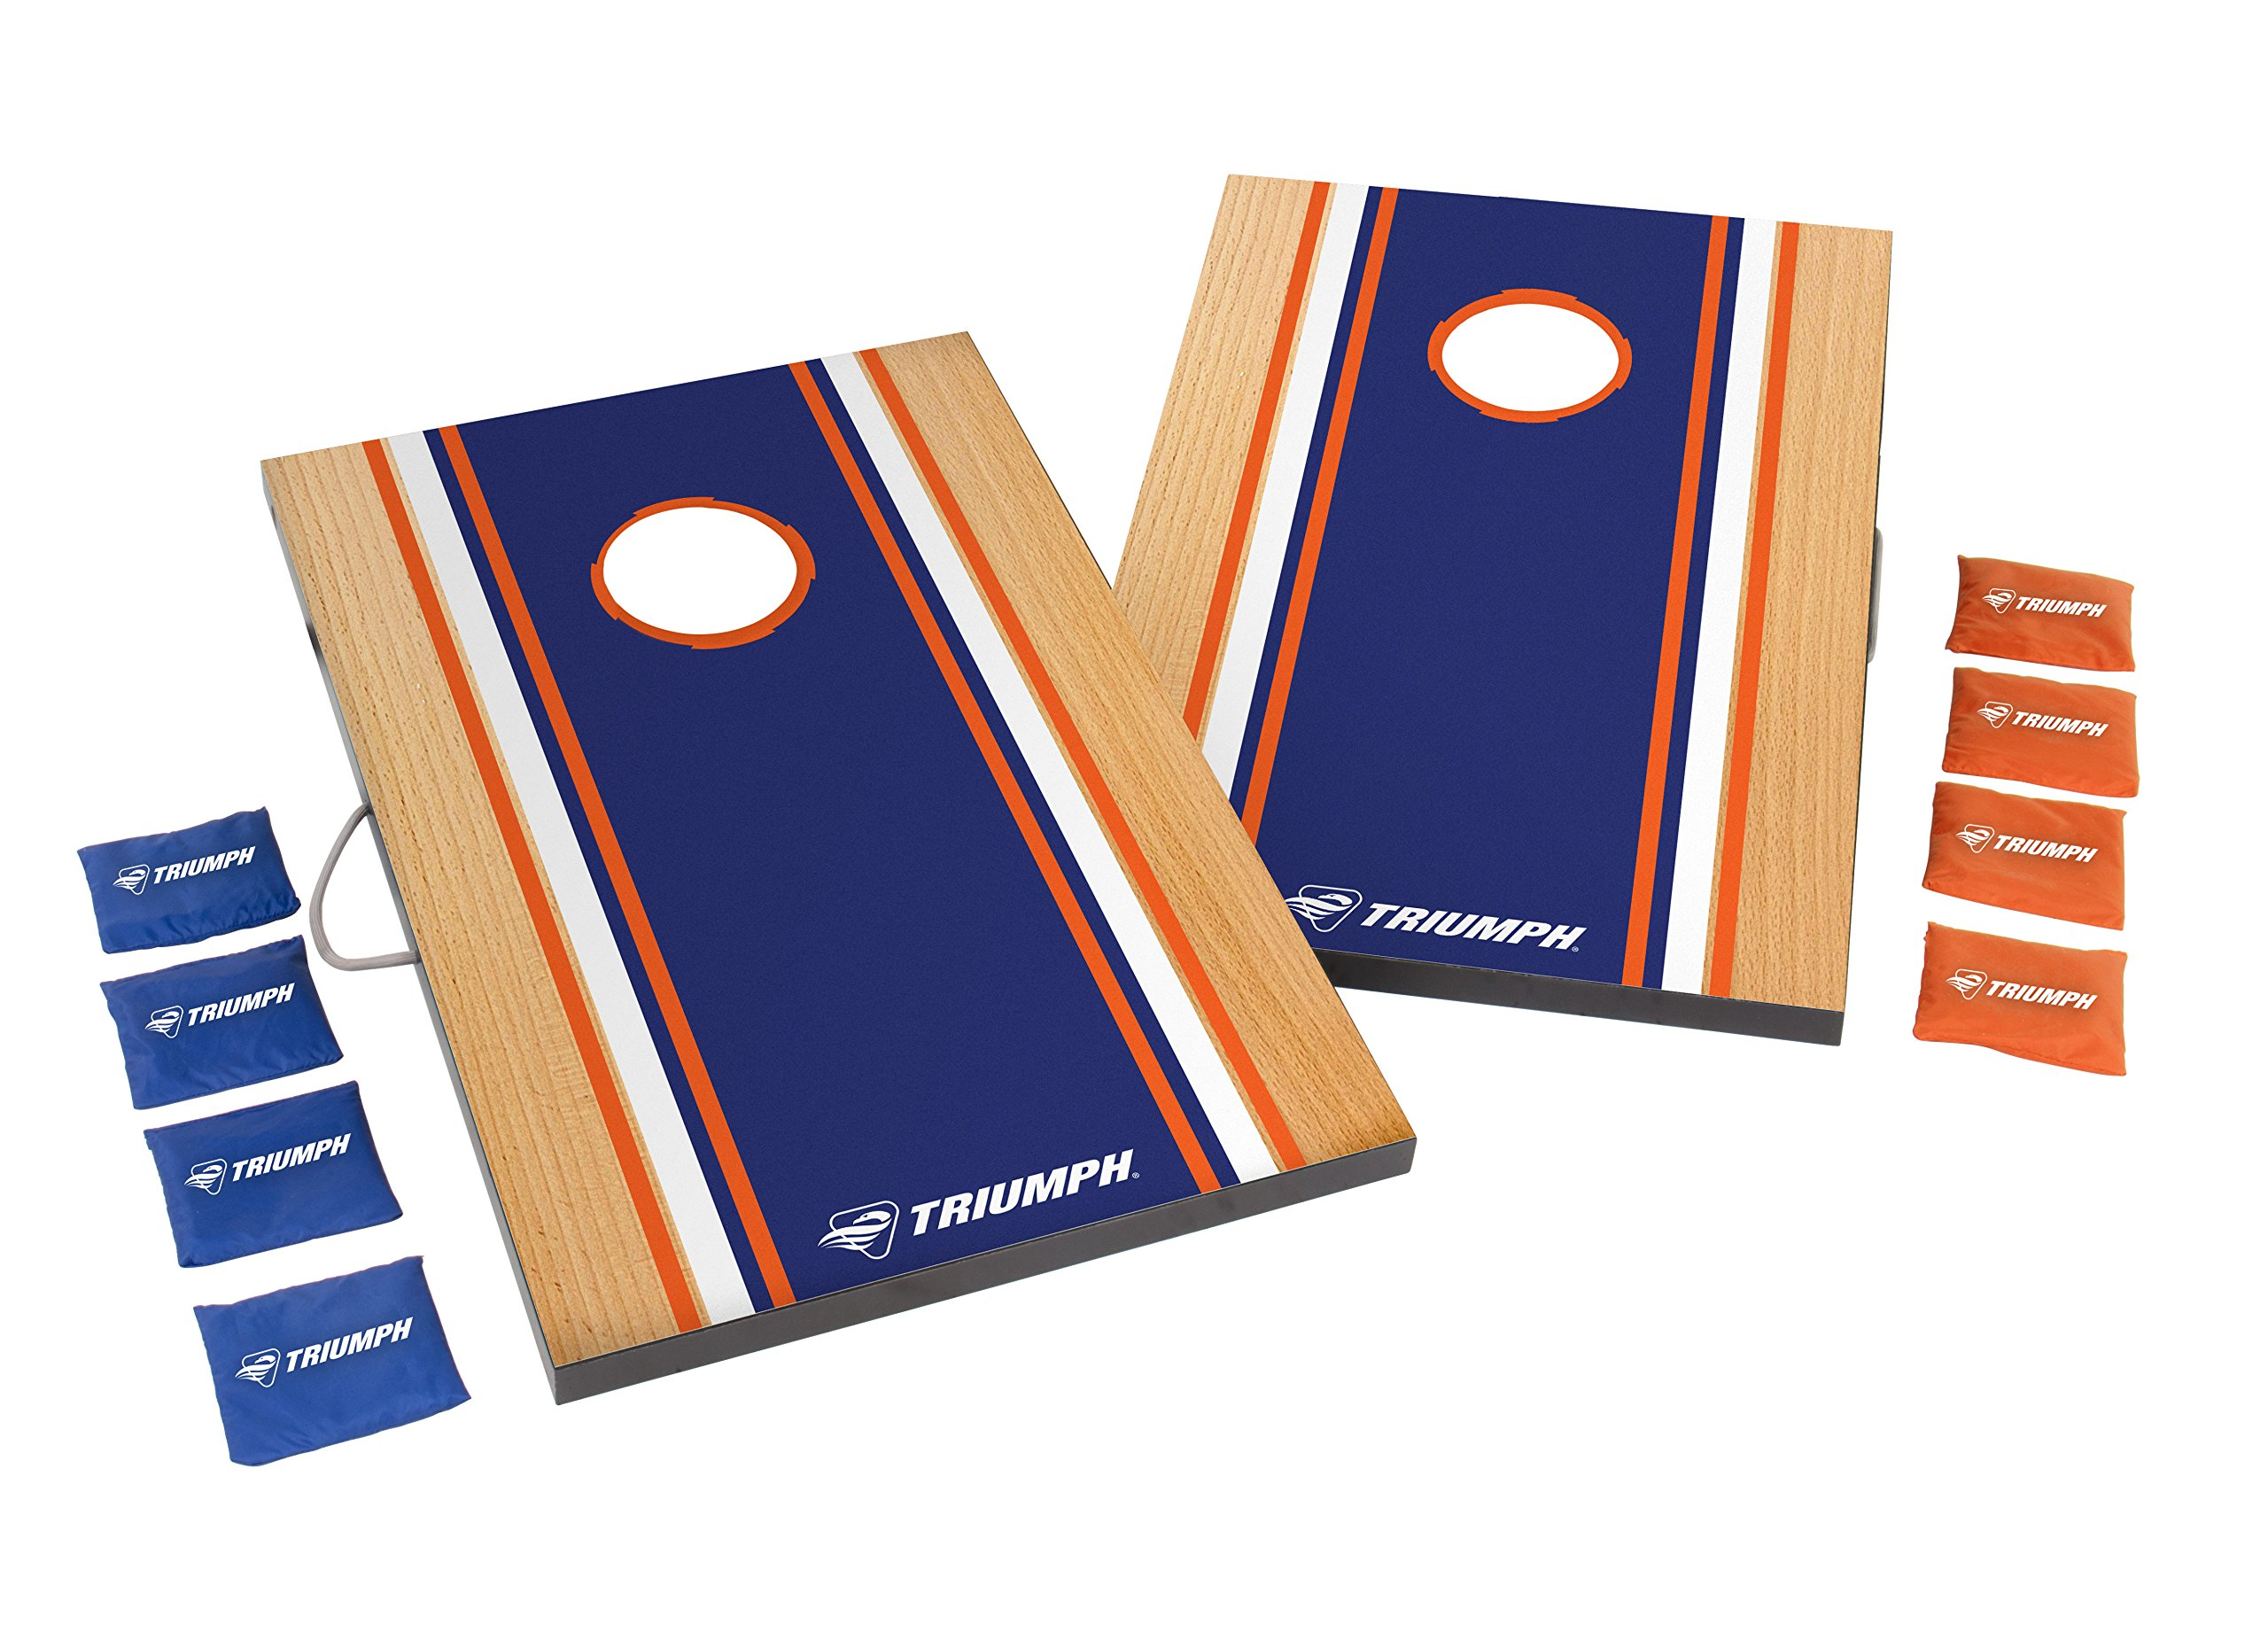 Triumph Competition 2' x 3' Outdoor Bean Bag Toss Set Includes 8 Bean Bags and Interior Storage for Easy Transportation